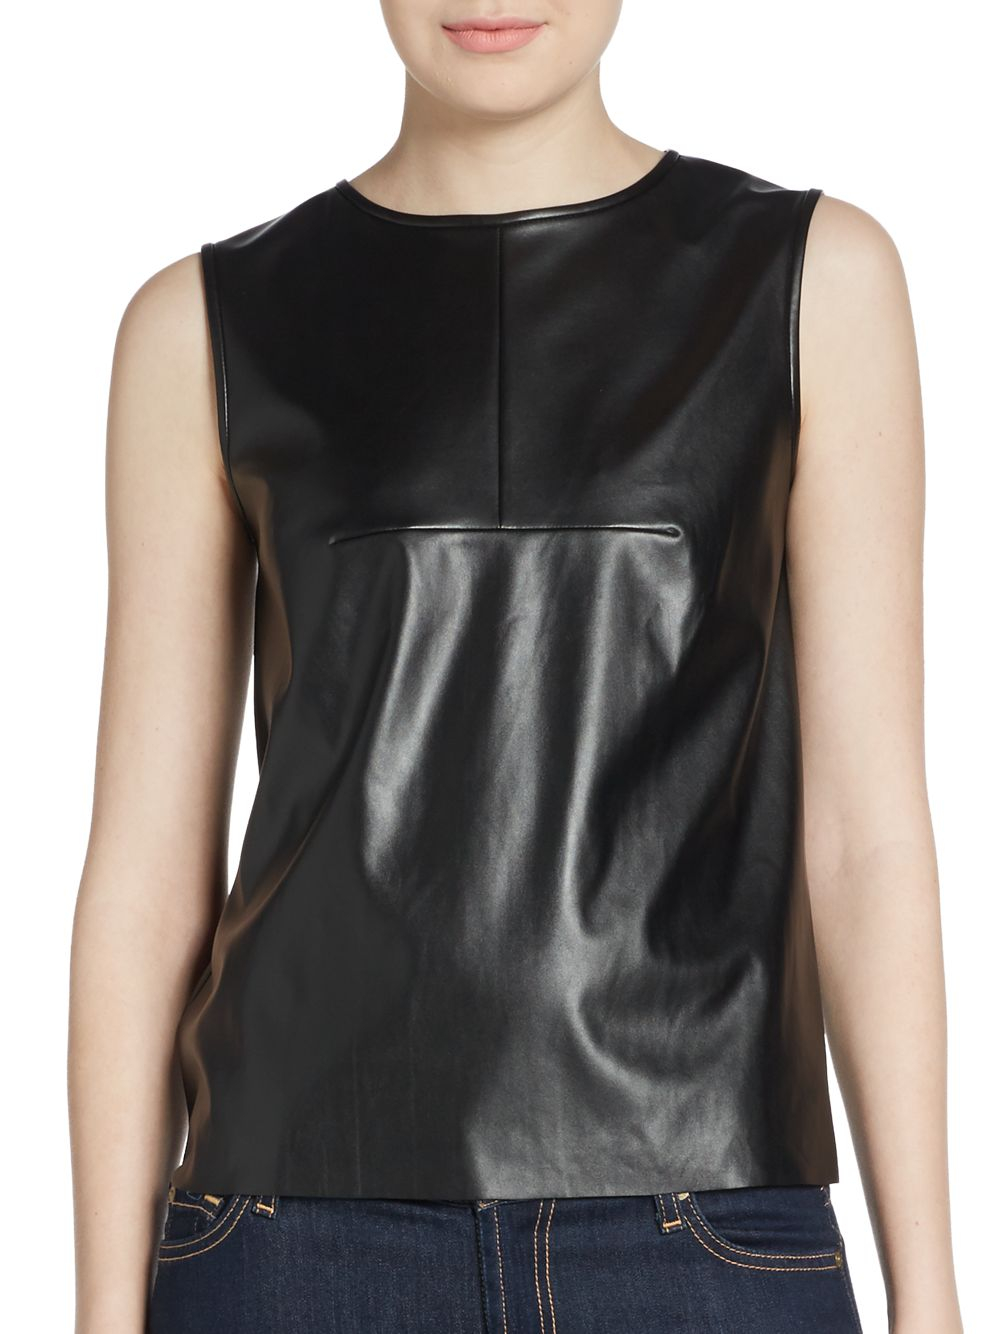 Authorized Decibel retailer. THE NEW DESIGNERS Polyurethane tank top THE NEW DESIGNERS logo on front Stretch material for ultimate comfort. Stretch fit. % polyurethane. Black